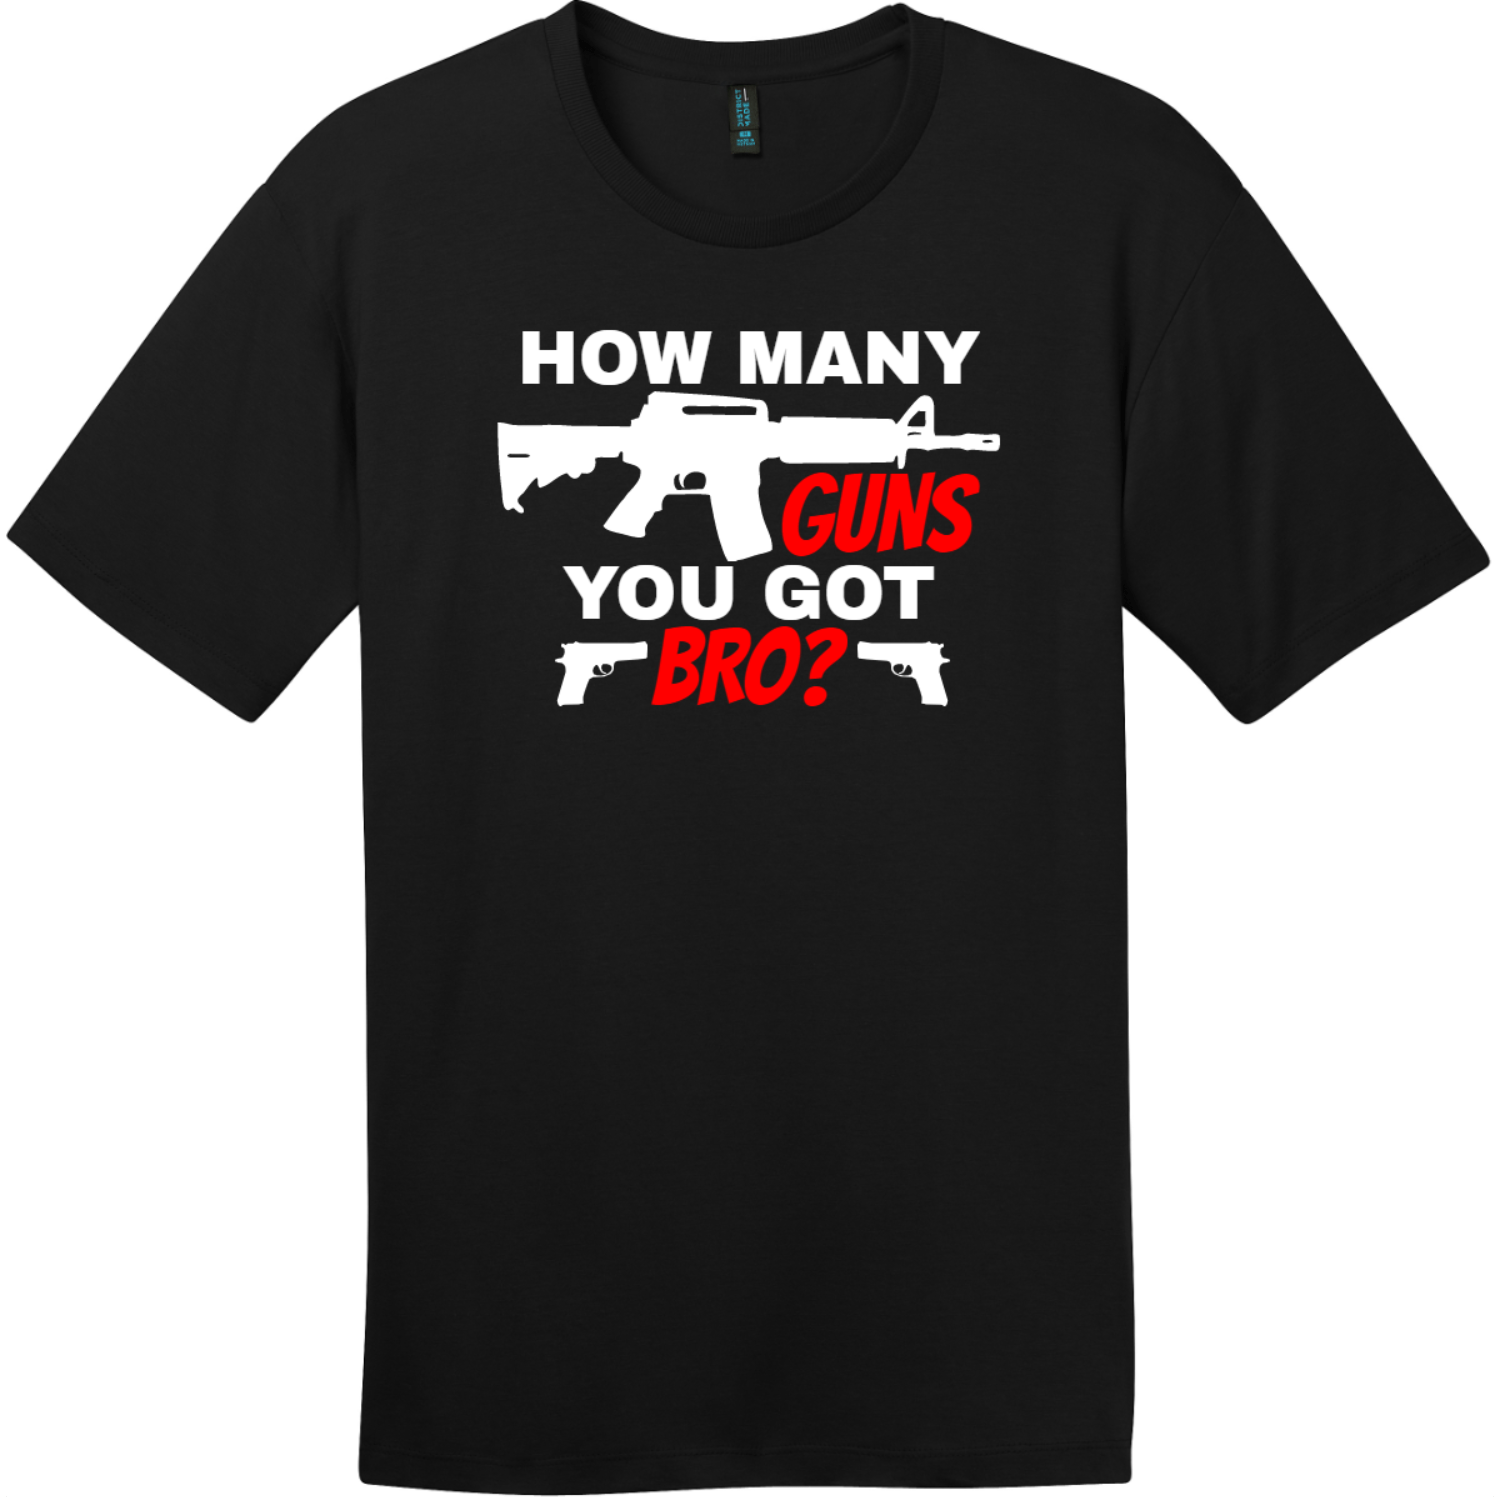 How Many Guns You Got Bro T-Shirt Jet Black District Perfect Weight Tee DT104